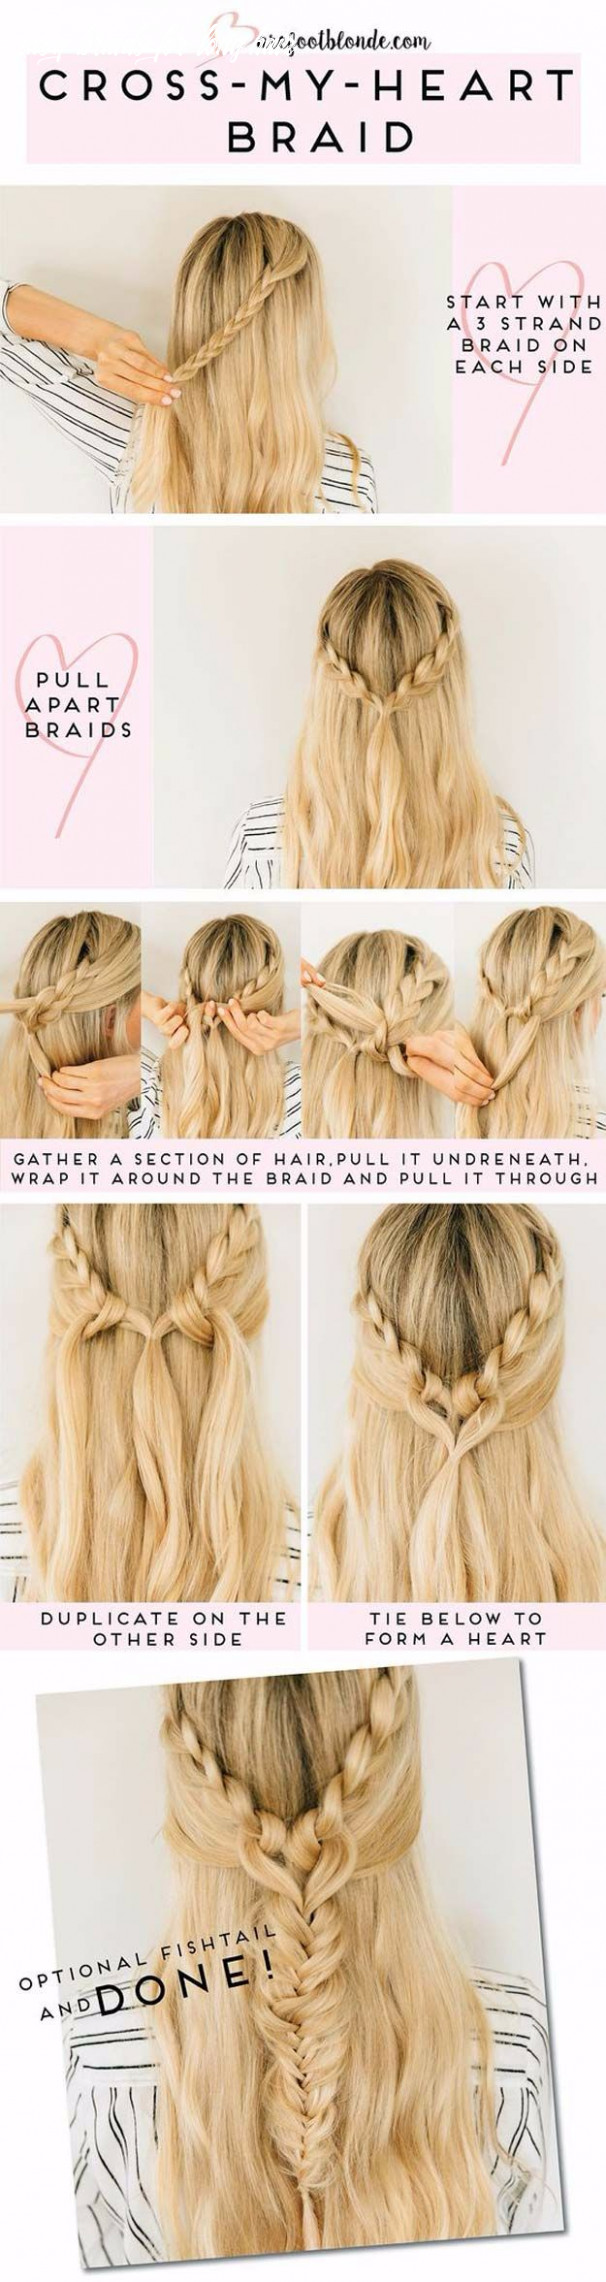 9 Cute and Easy Braids For Back To School